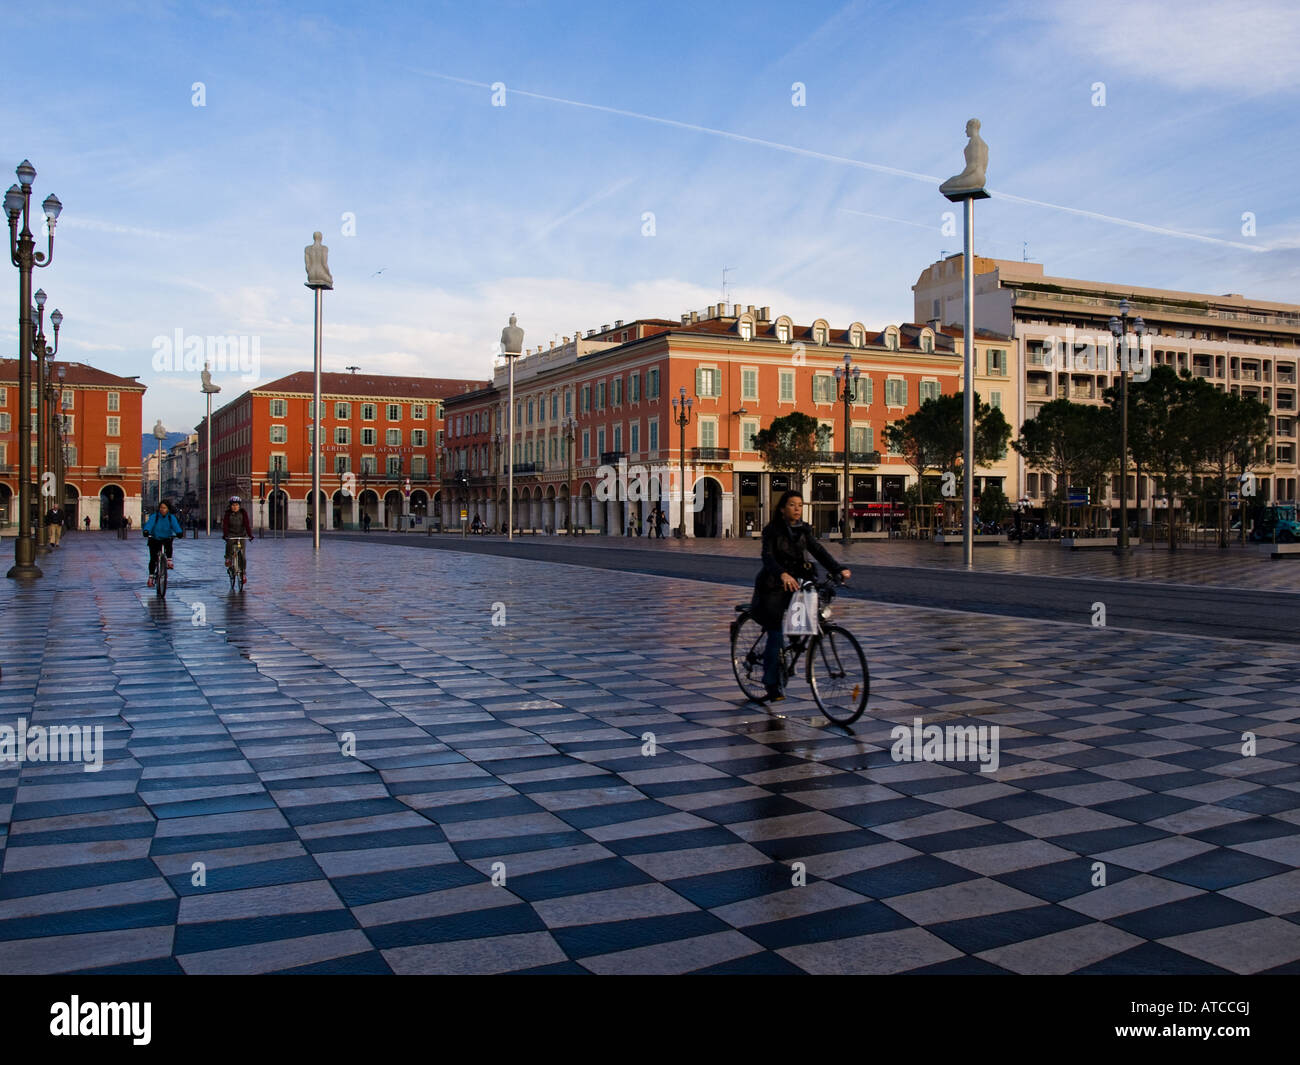 Cycling in Place Masséna in Nice, France. - Stock Image